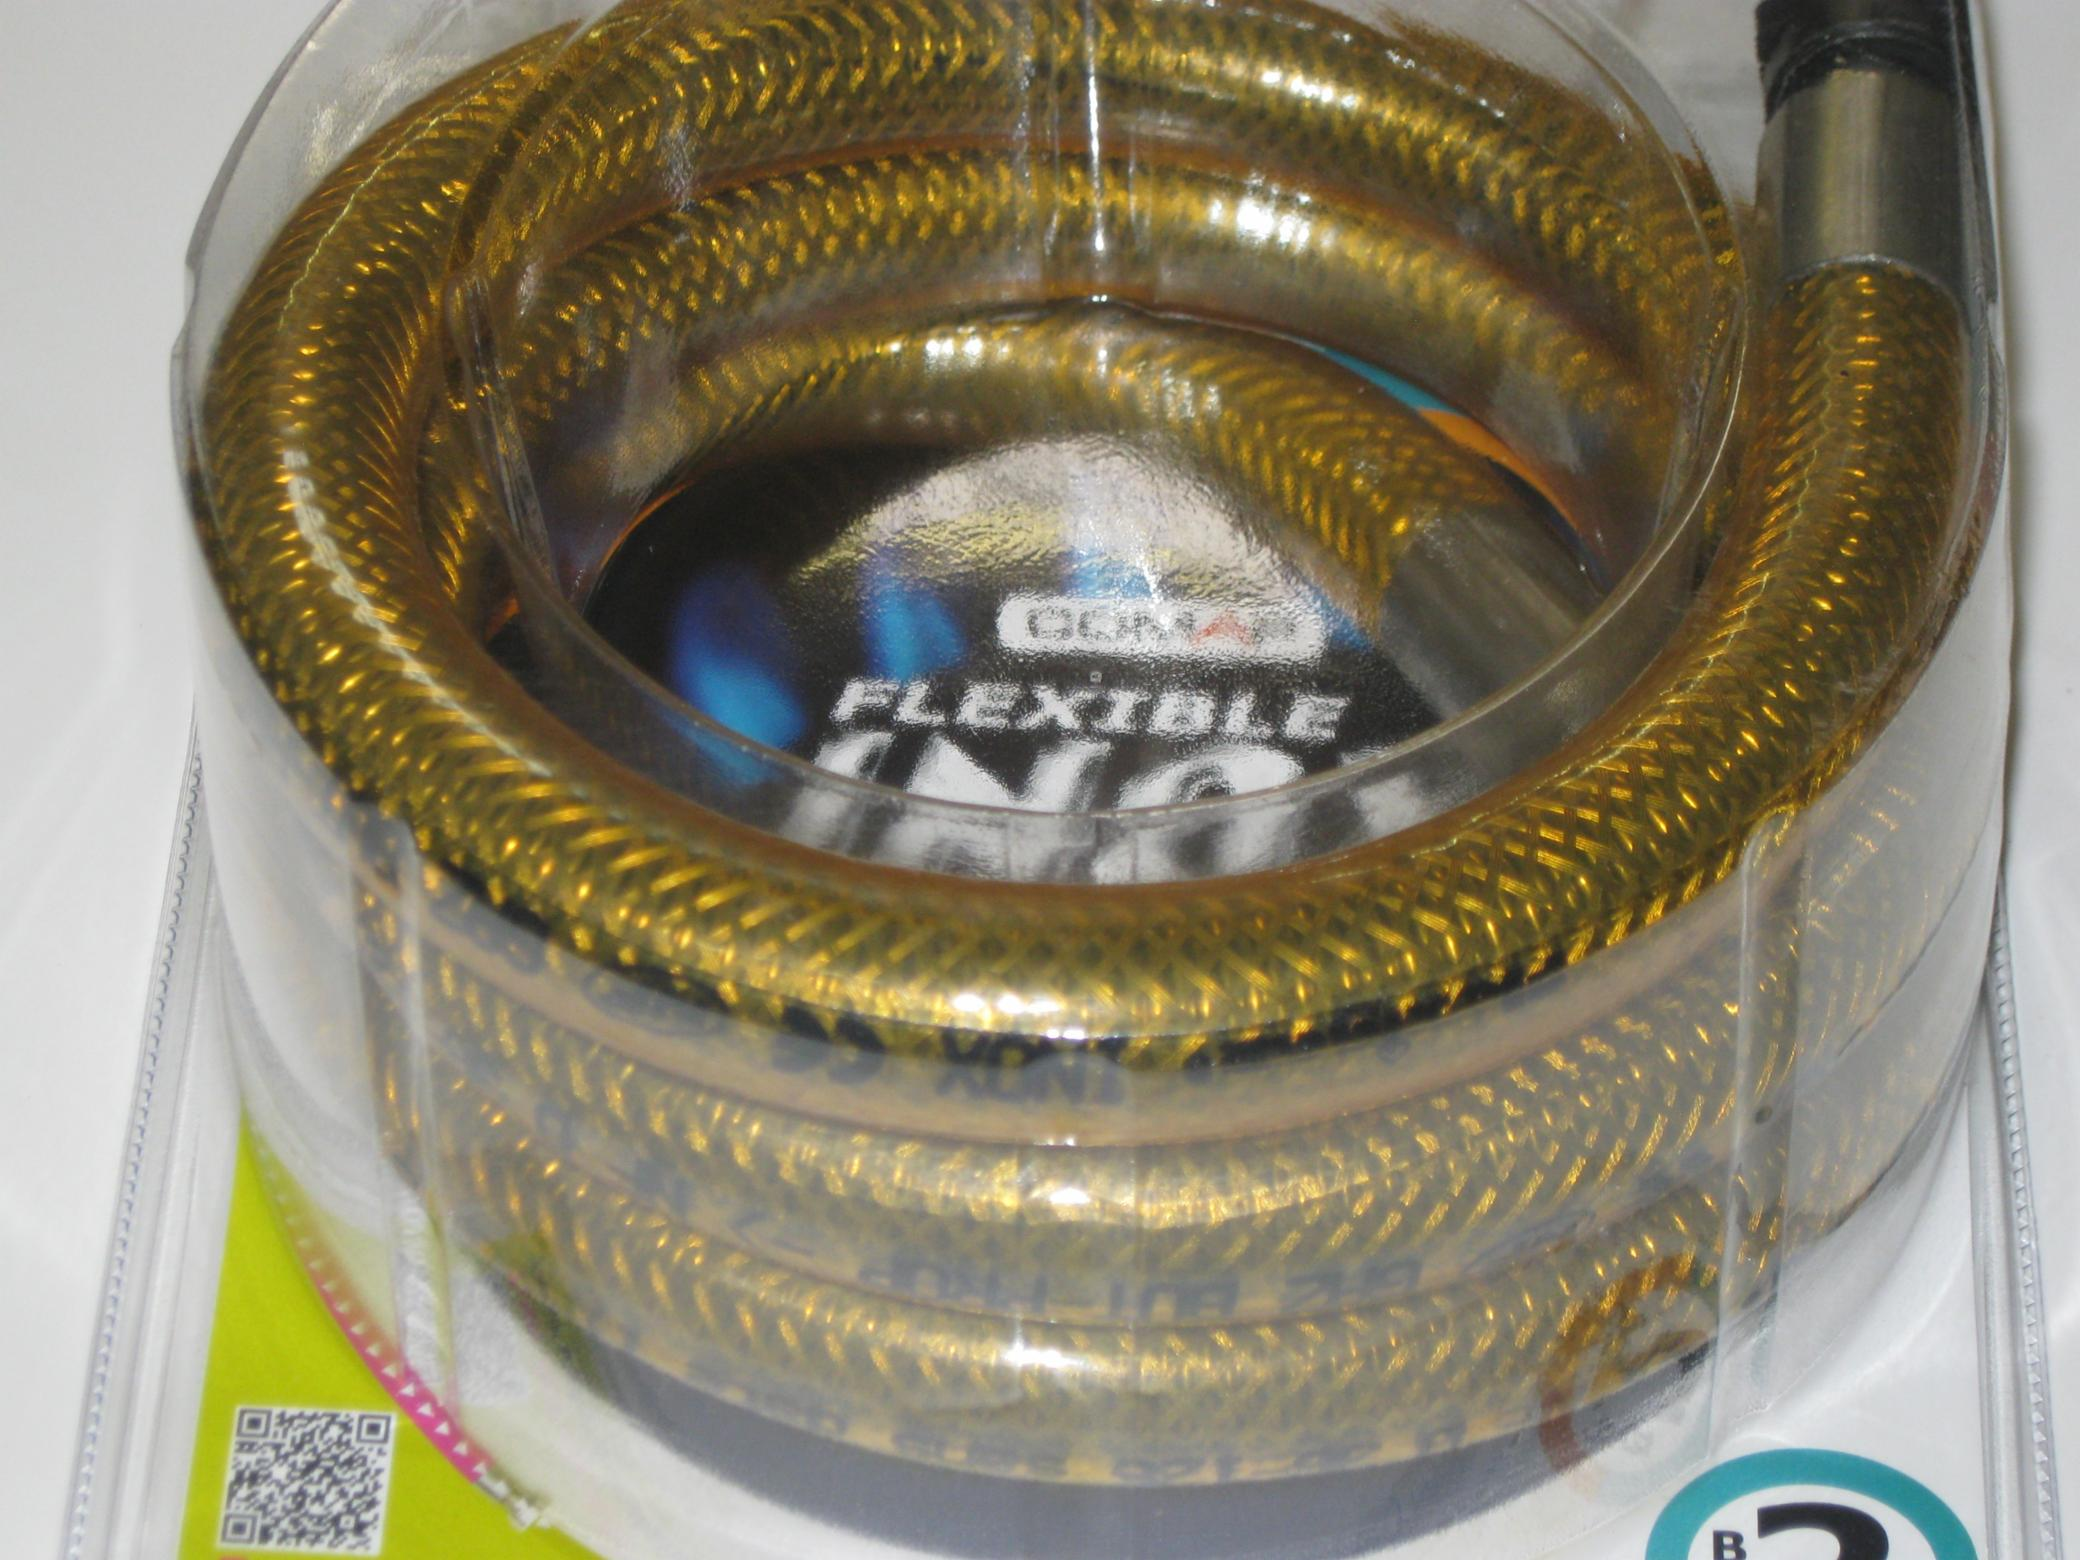 FLEXIBLE INOX A VIE 1,5 M